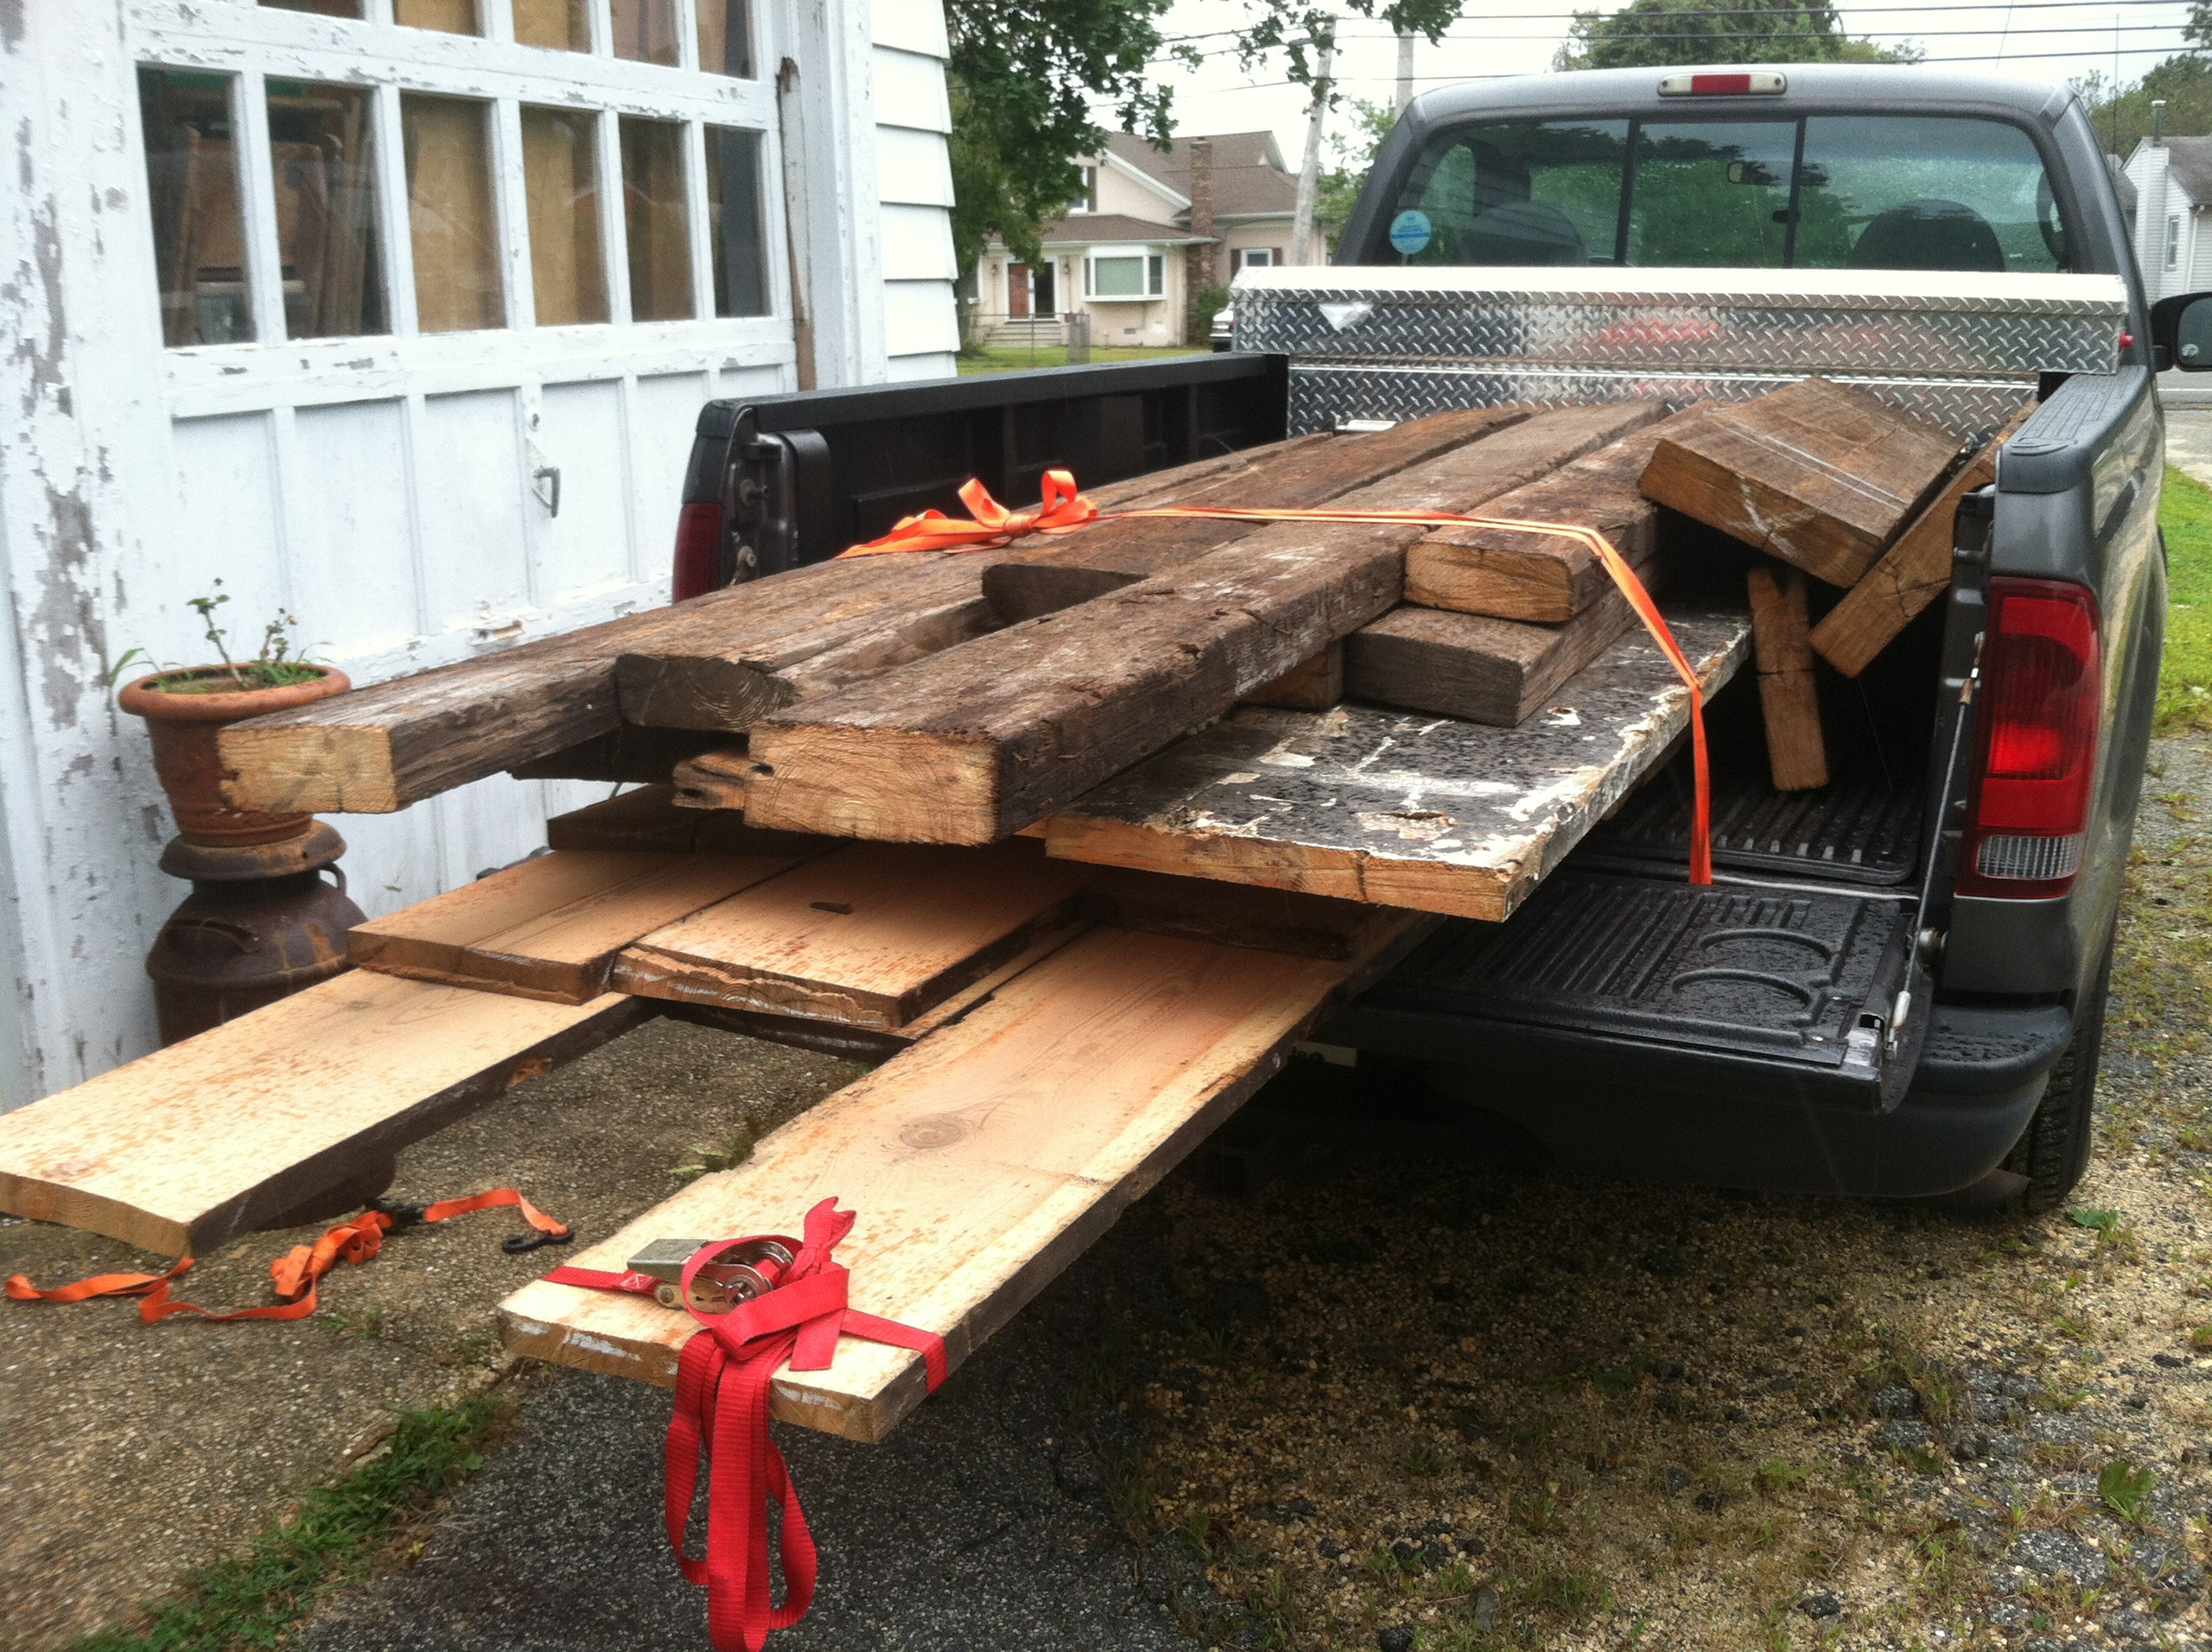 Lumber for the project